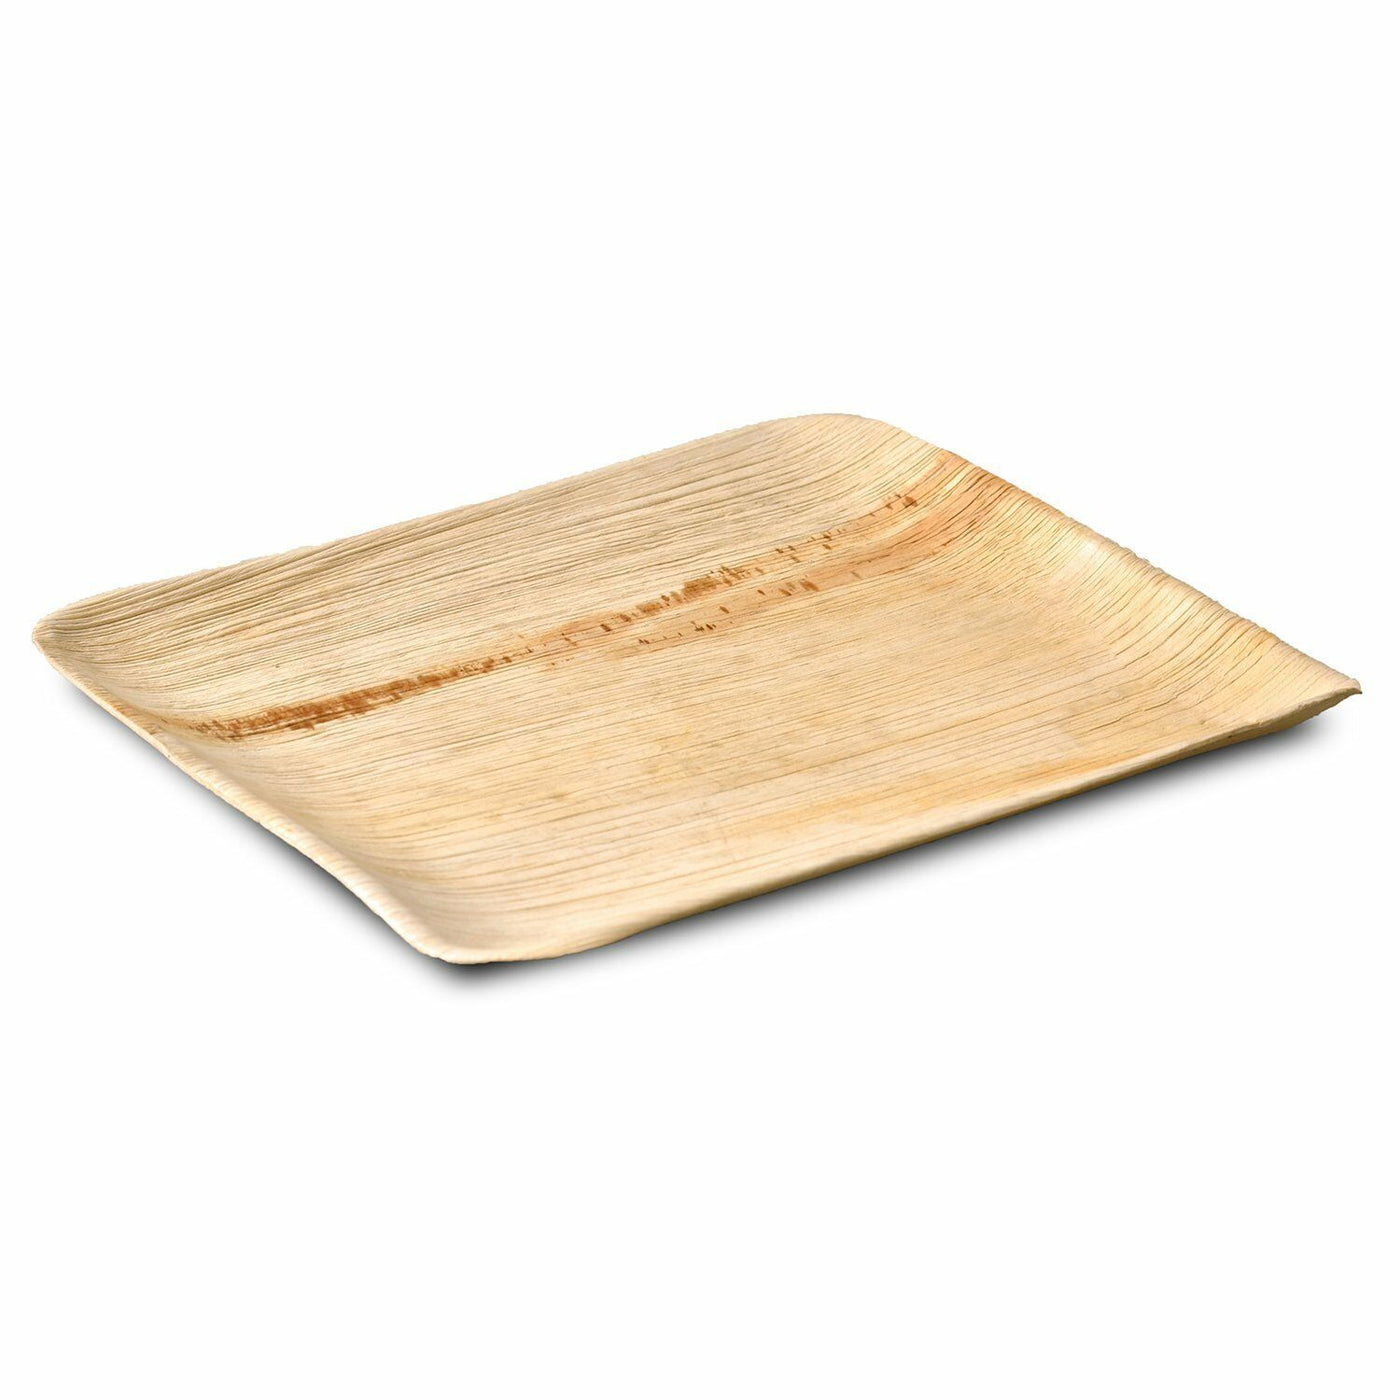 Palm Leaf Rectangle Platter Tray 12 inch x 10 inch- 25/package